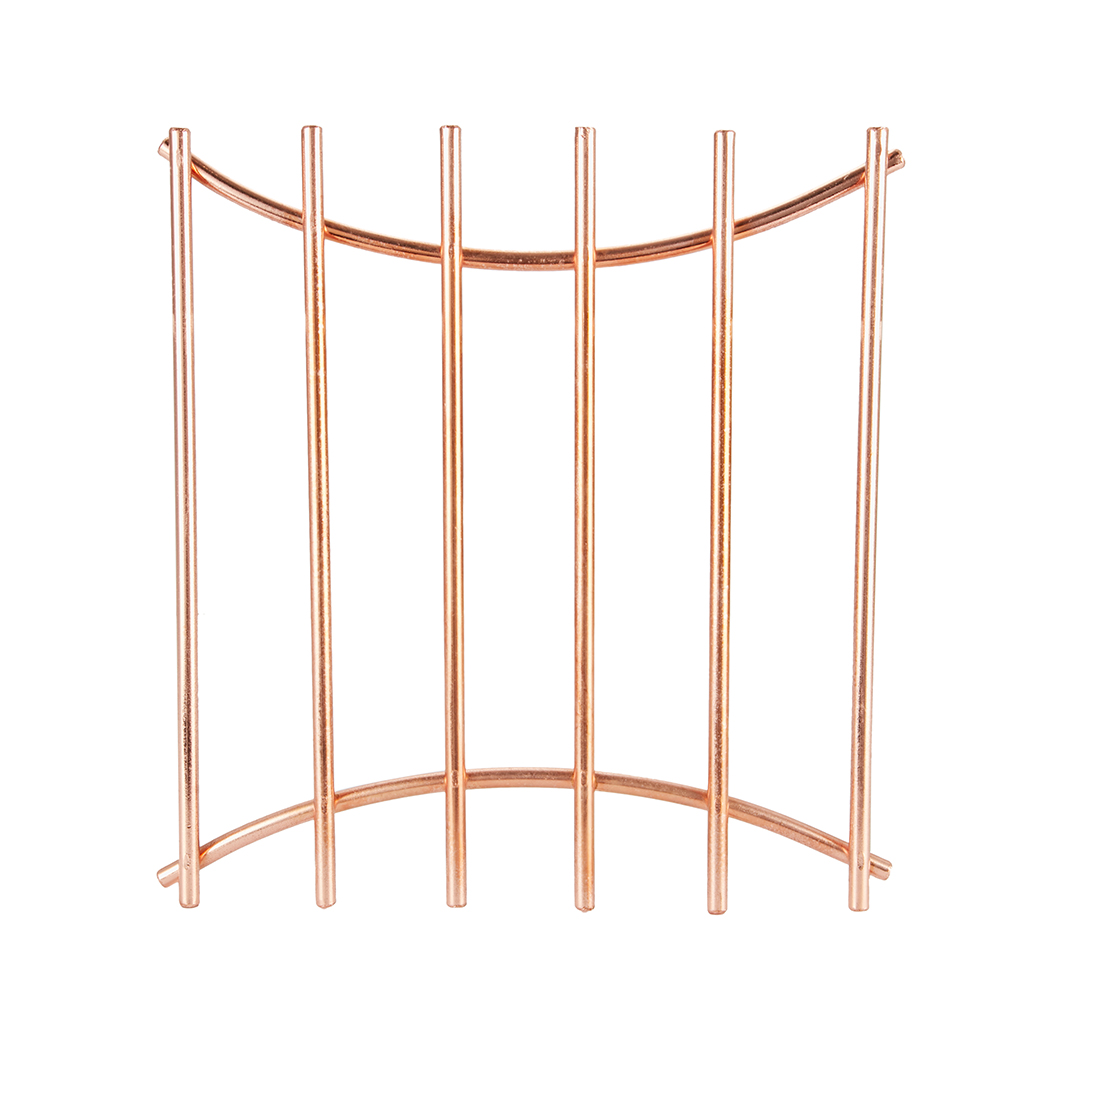 Trivet Kitchen Essentials in Copper Finish Colour by Living Essence